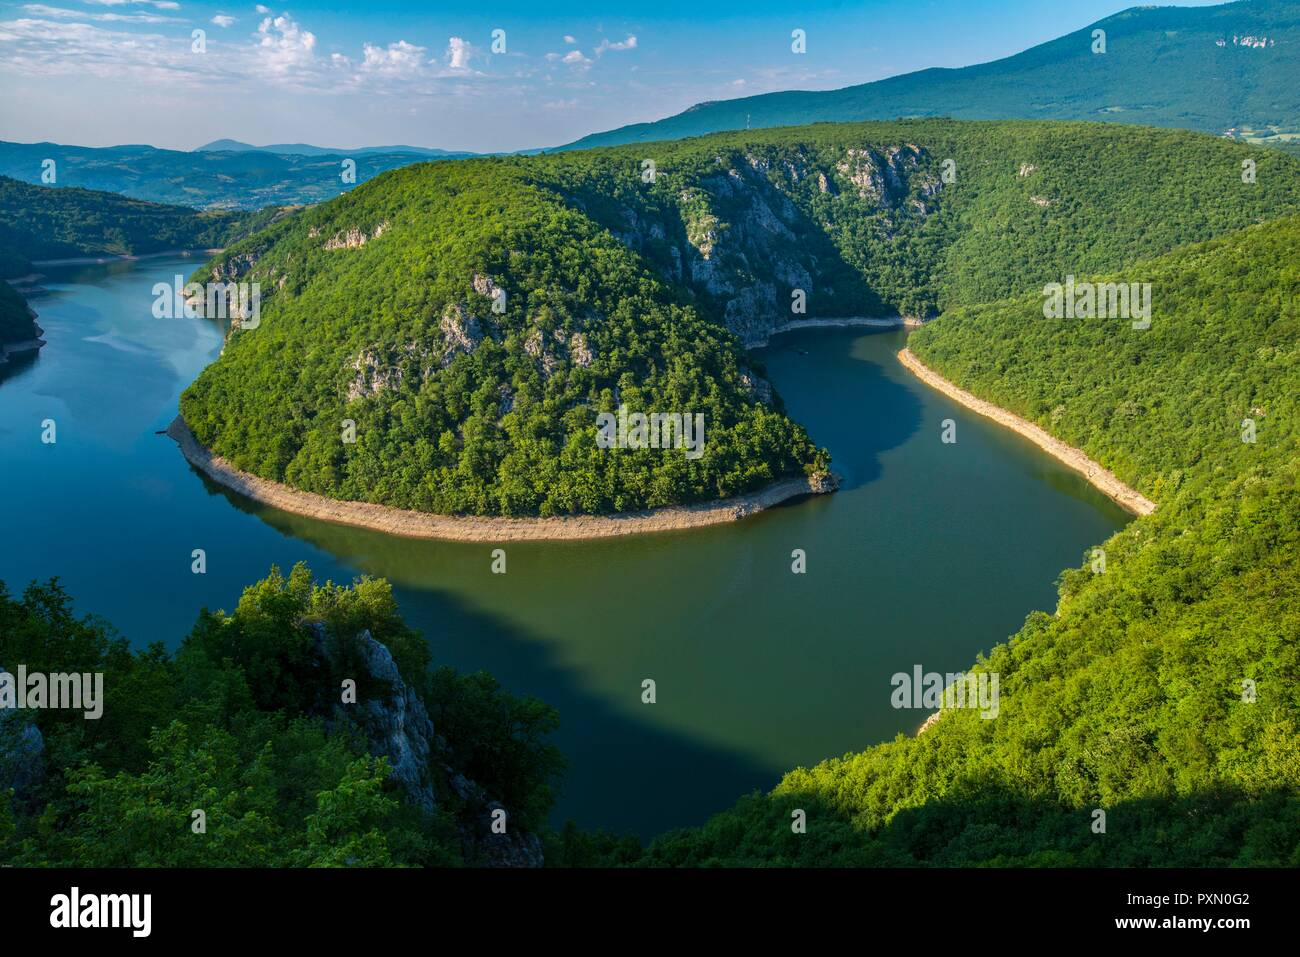 Bosnia-Herzegovina. The bend of the dammed up Vbras River in Republica Srpska belongs to the most beautiful regions - Stock Image